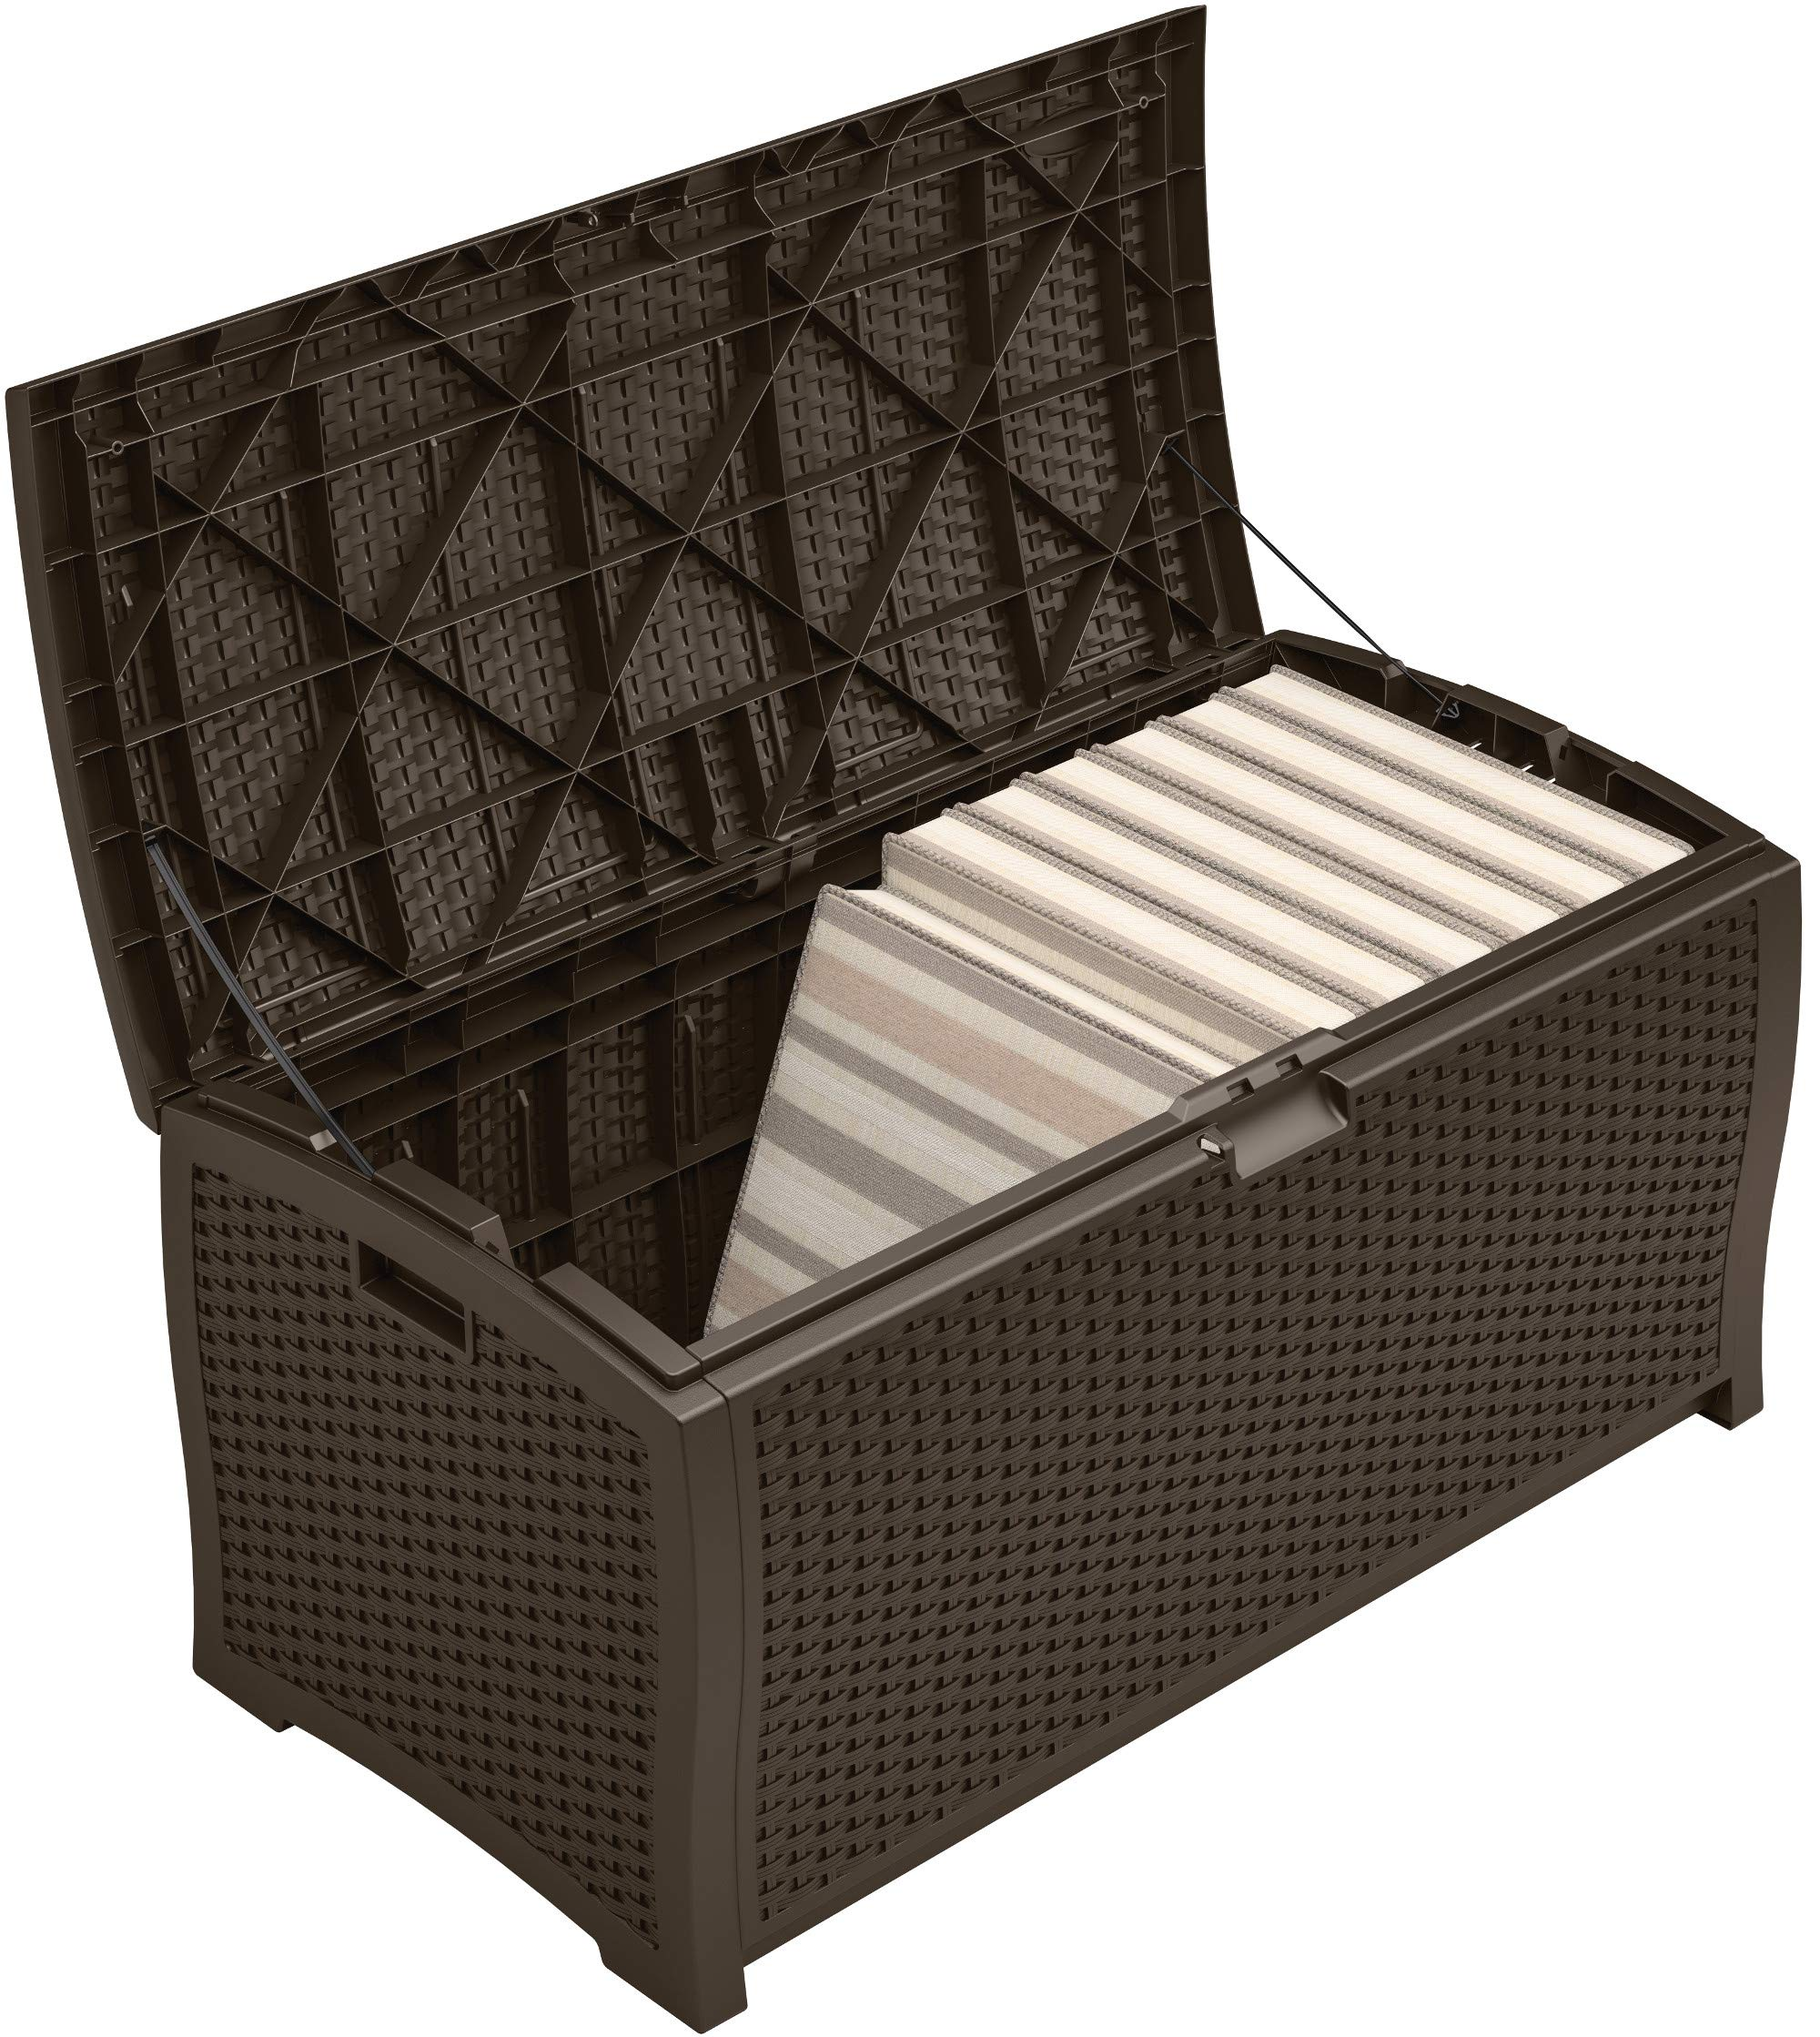 Suncast 99 Gallon Resin Wicker Patio Storage Box - Waterproof Outdoor Storage Container for Toys, Furniture, Yard Tools - Store Items on Deck, Porch, Backyard - Mocha by Suncast (Image #5)